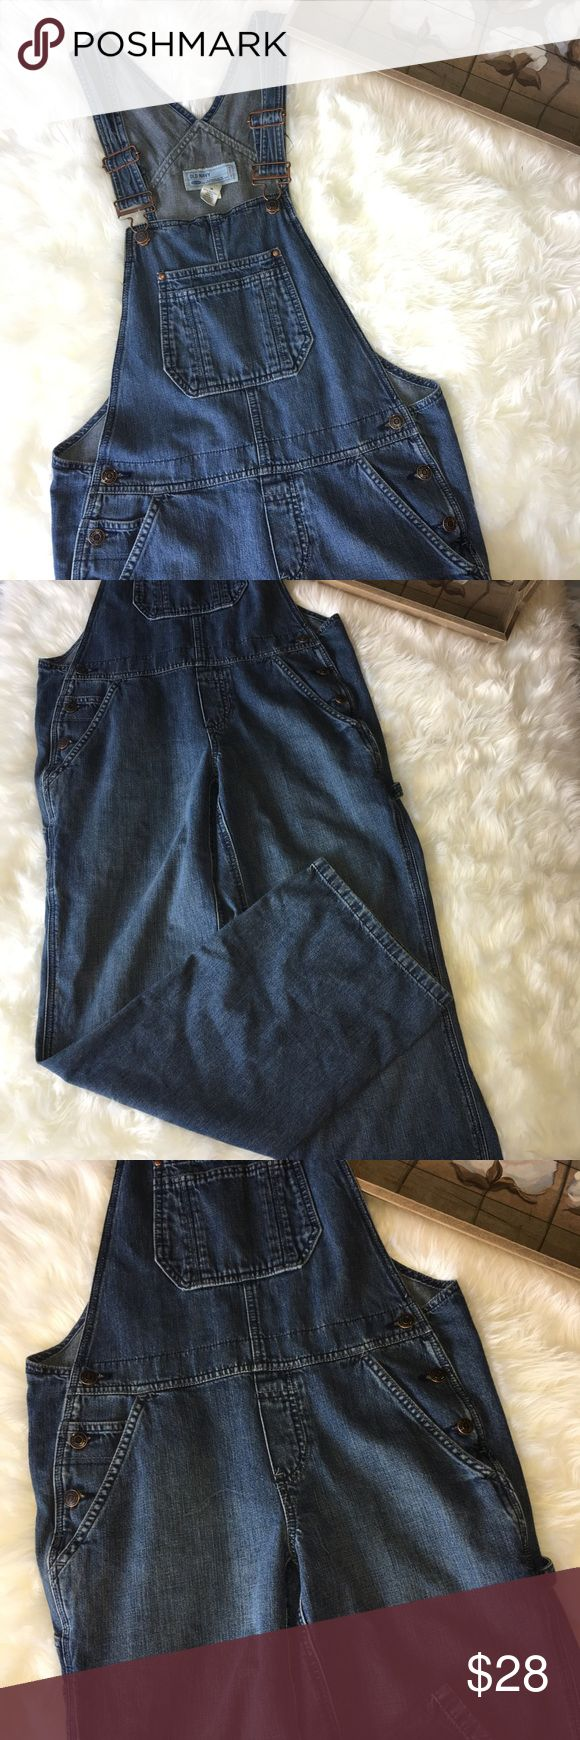 Old Navy Blue Jean Overalls Old navy blue jean overalls size medium. Old Navy Jeans Overalls